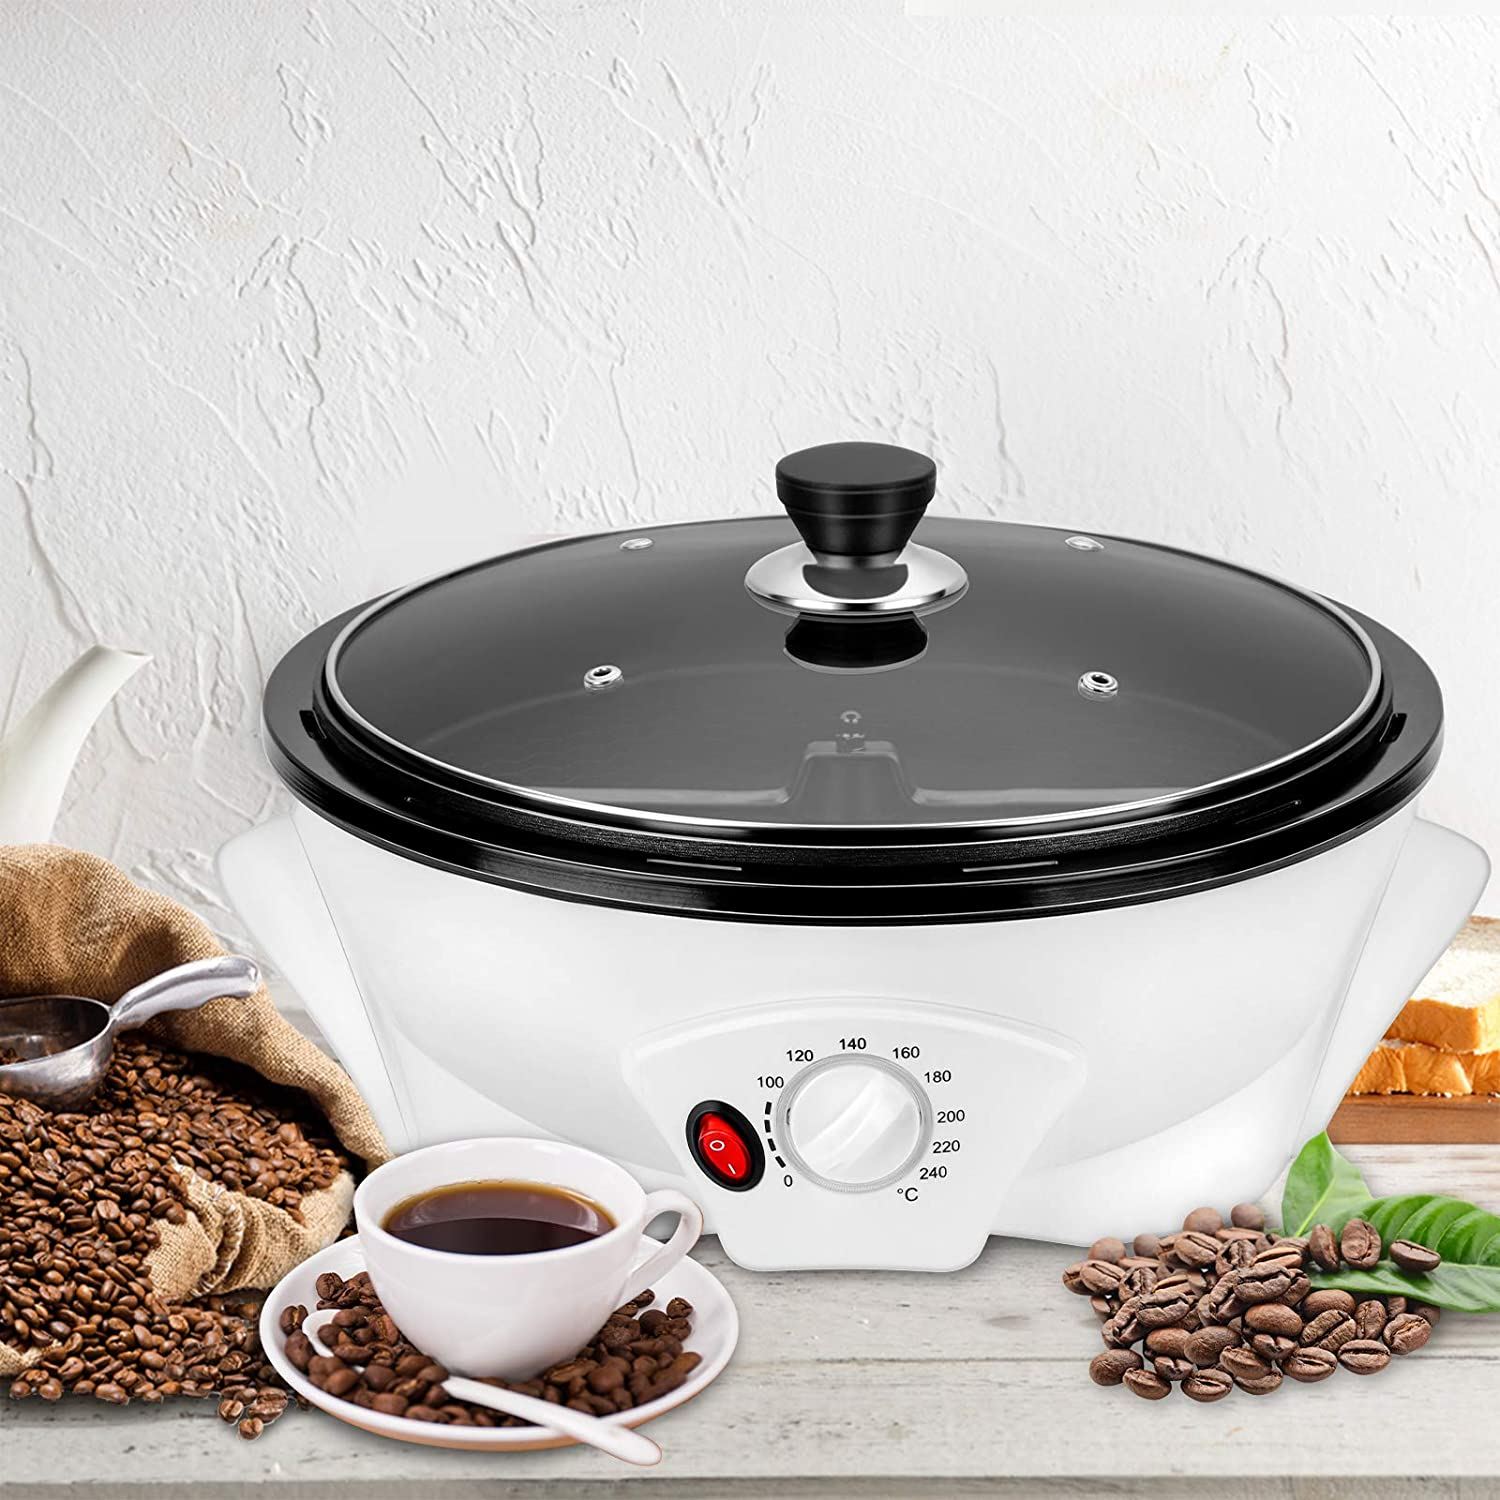 【US STOCK】Coffee Roaster Machine for Home Use, 800g Capacity Electric Coffee Bean Roaster, Multifunctional Nut Peanut Cashew Chestnuts Roasting, Non-Stick Design, 110V